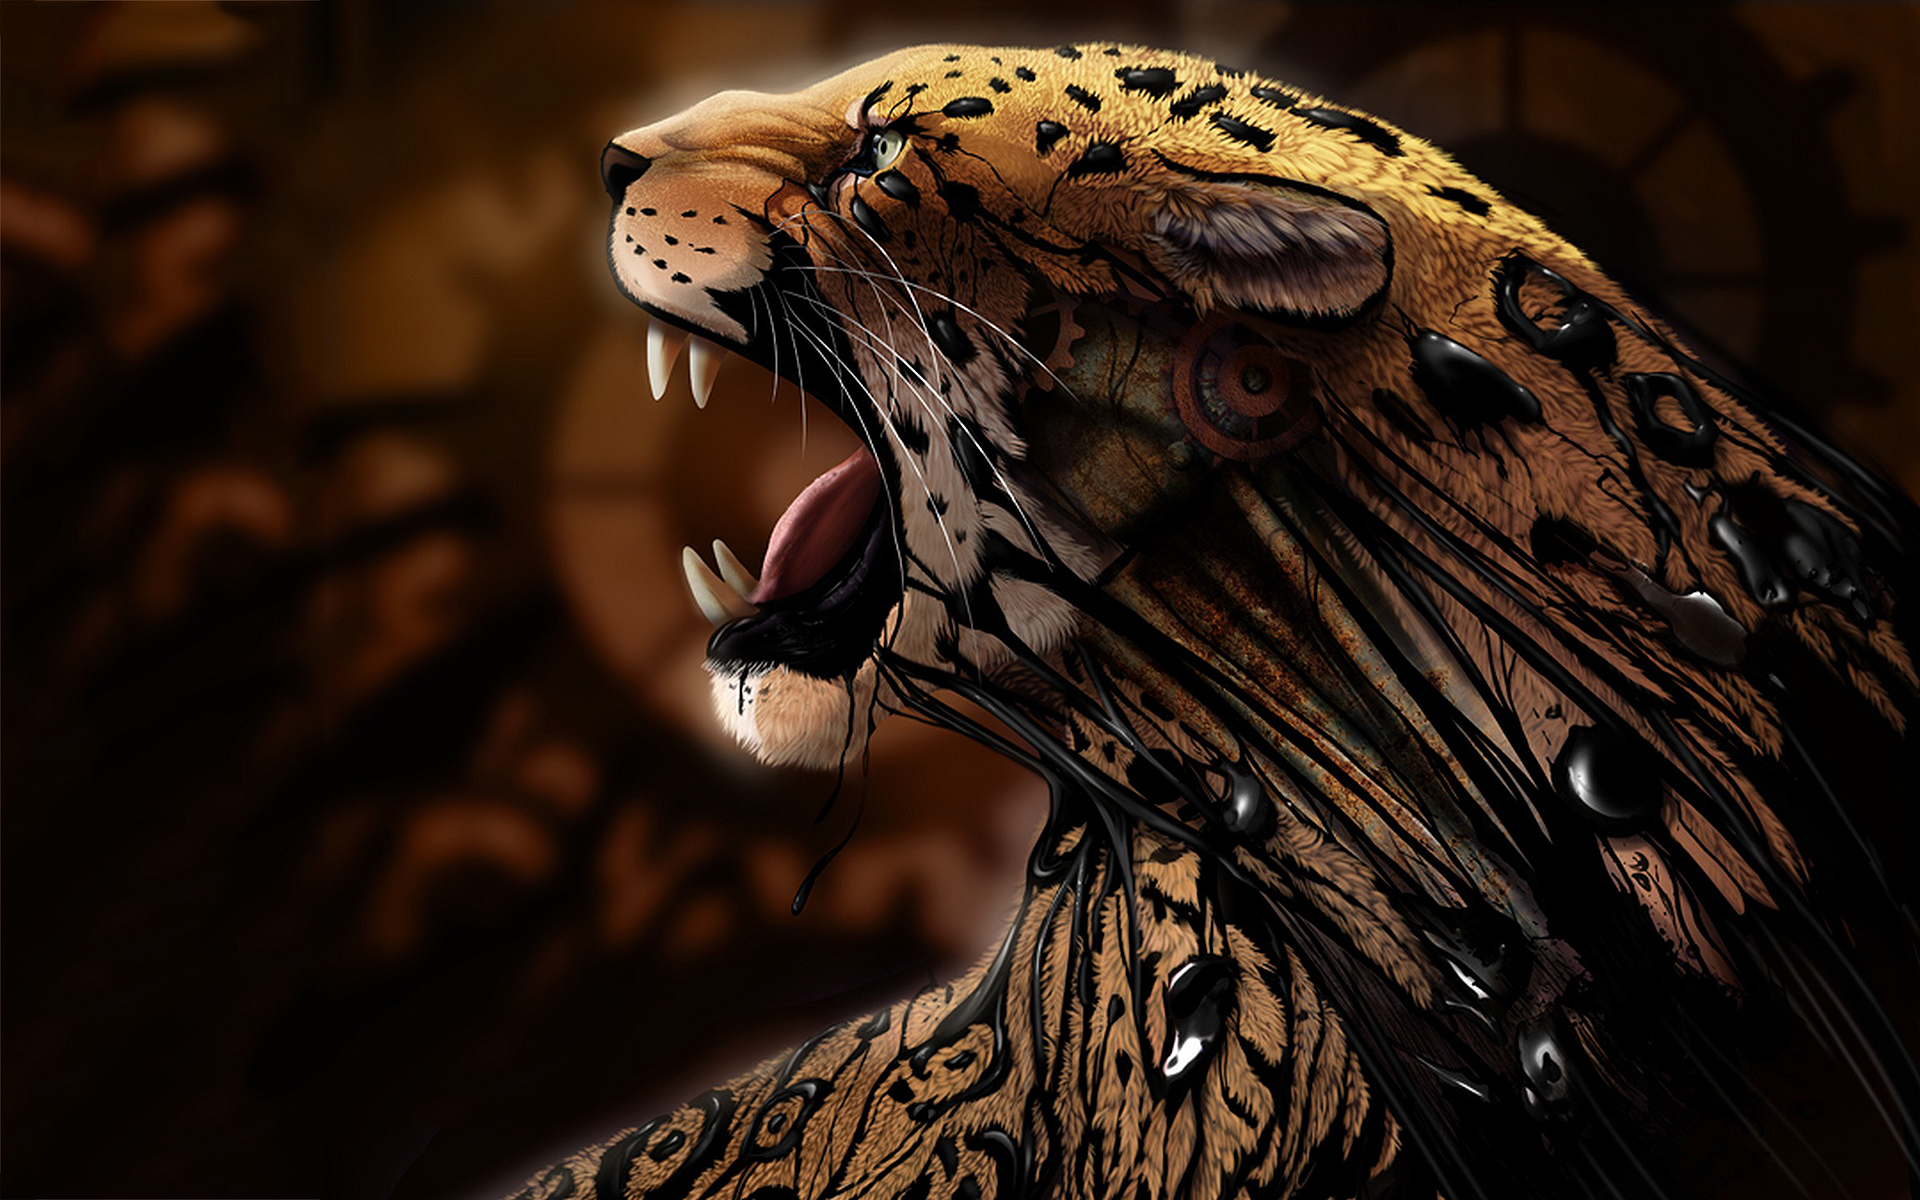 Simple s wallpaper 2560x1600 57806 - Jaguar animal hd wallpapers ...